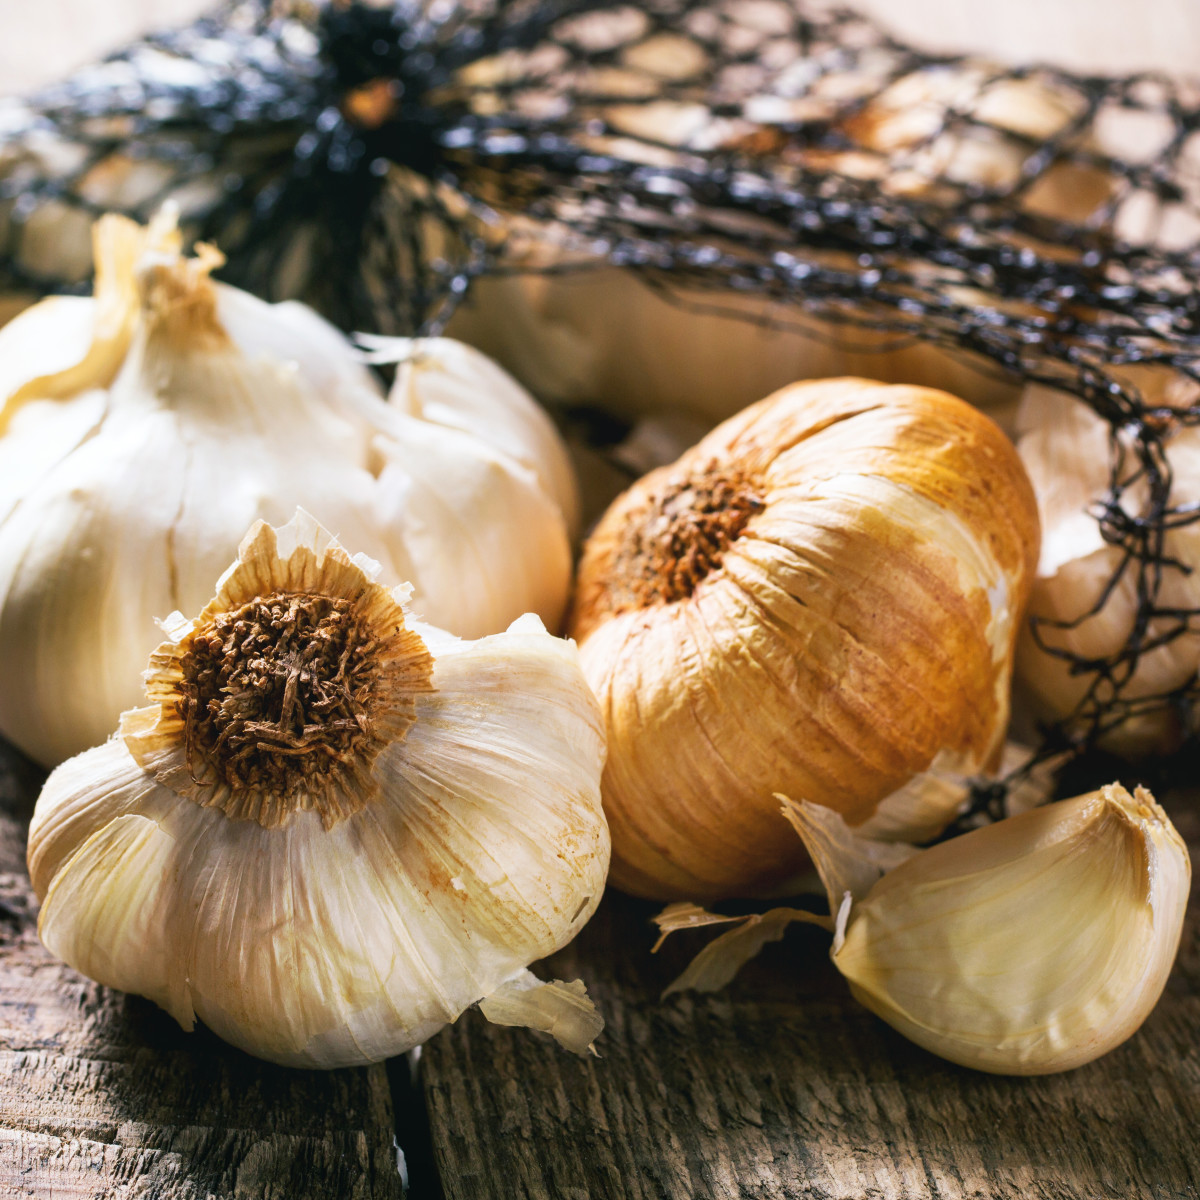 Garlic is best taken raw.